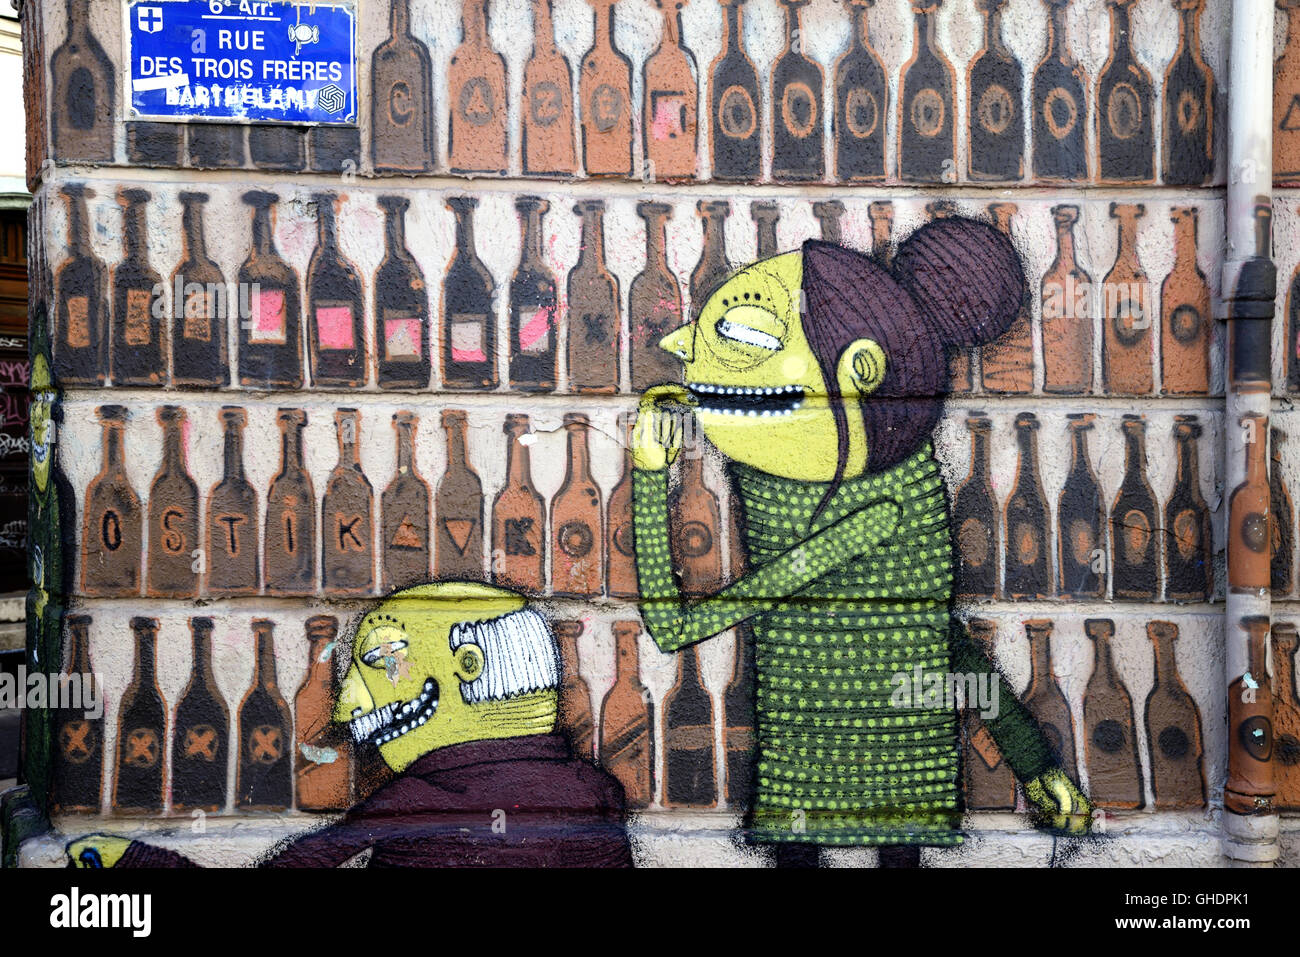 Wall Painting of Couple in Liquor Store or Off License Selecting Bottle of Wine, Street Art, Marseille or Marseilles - Stock Image